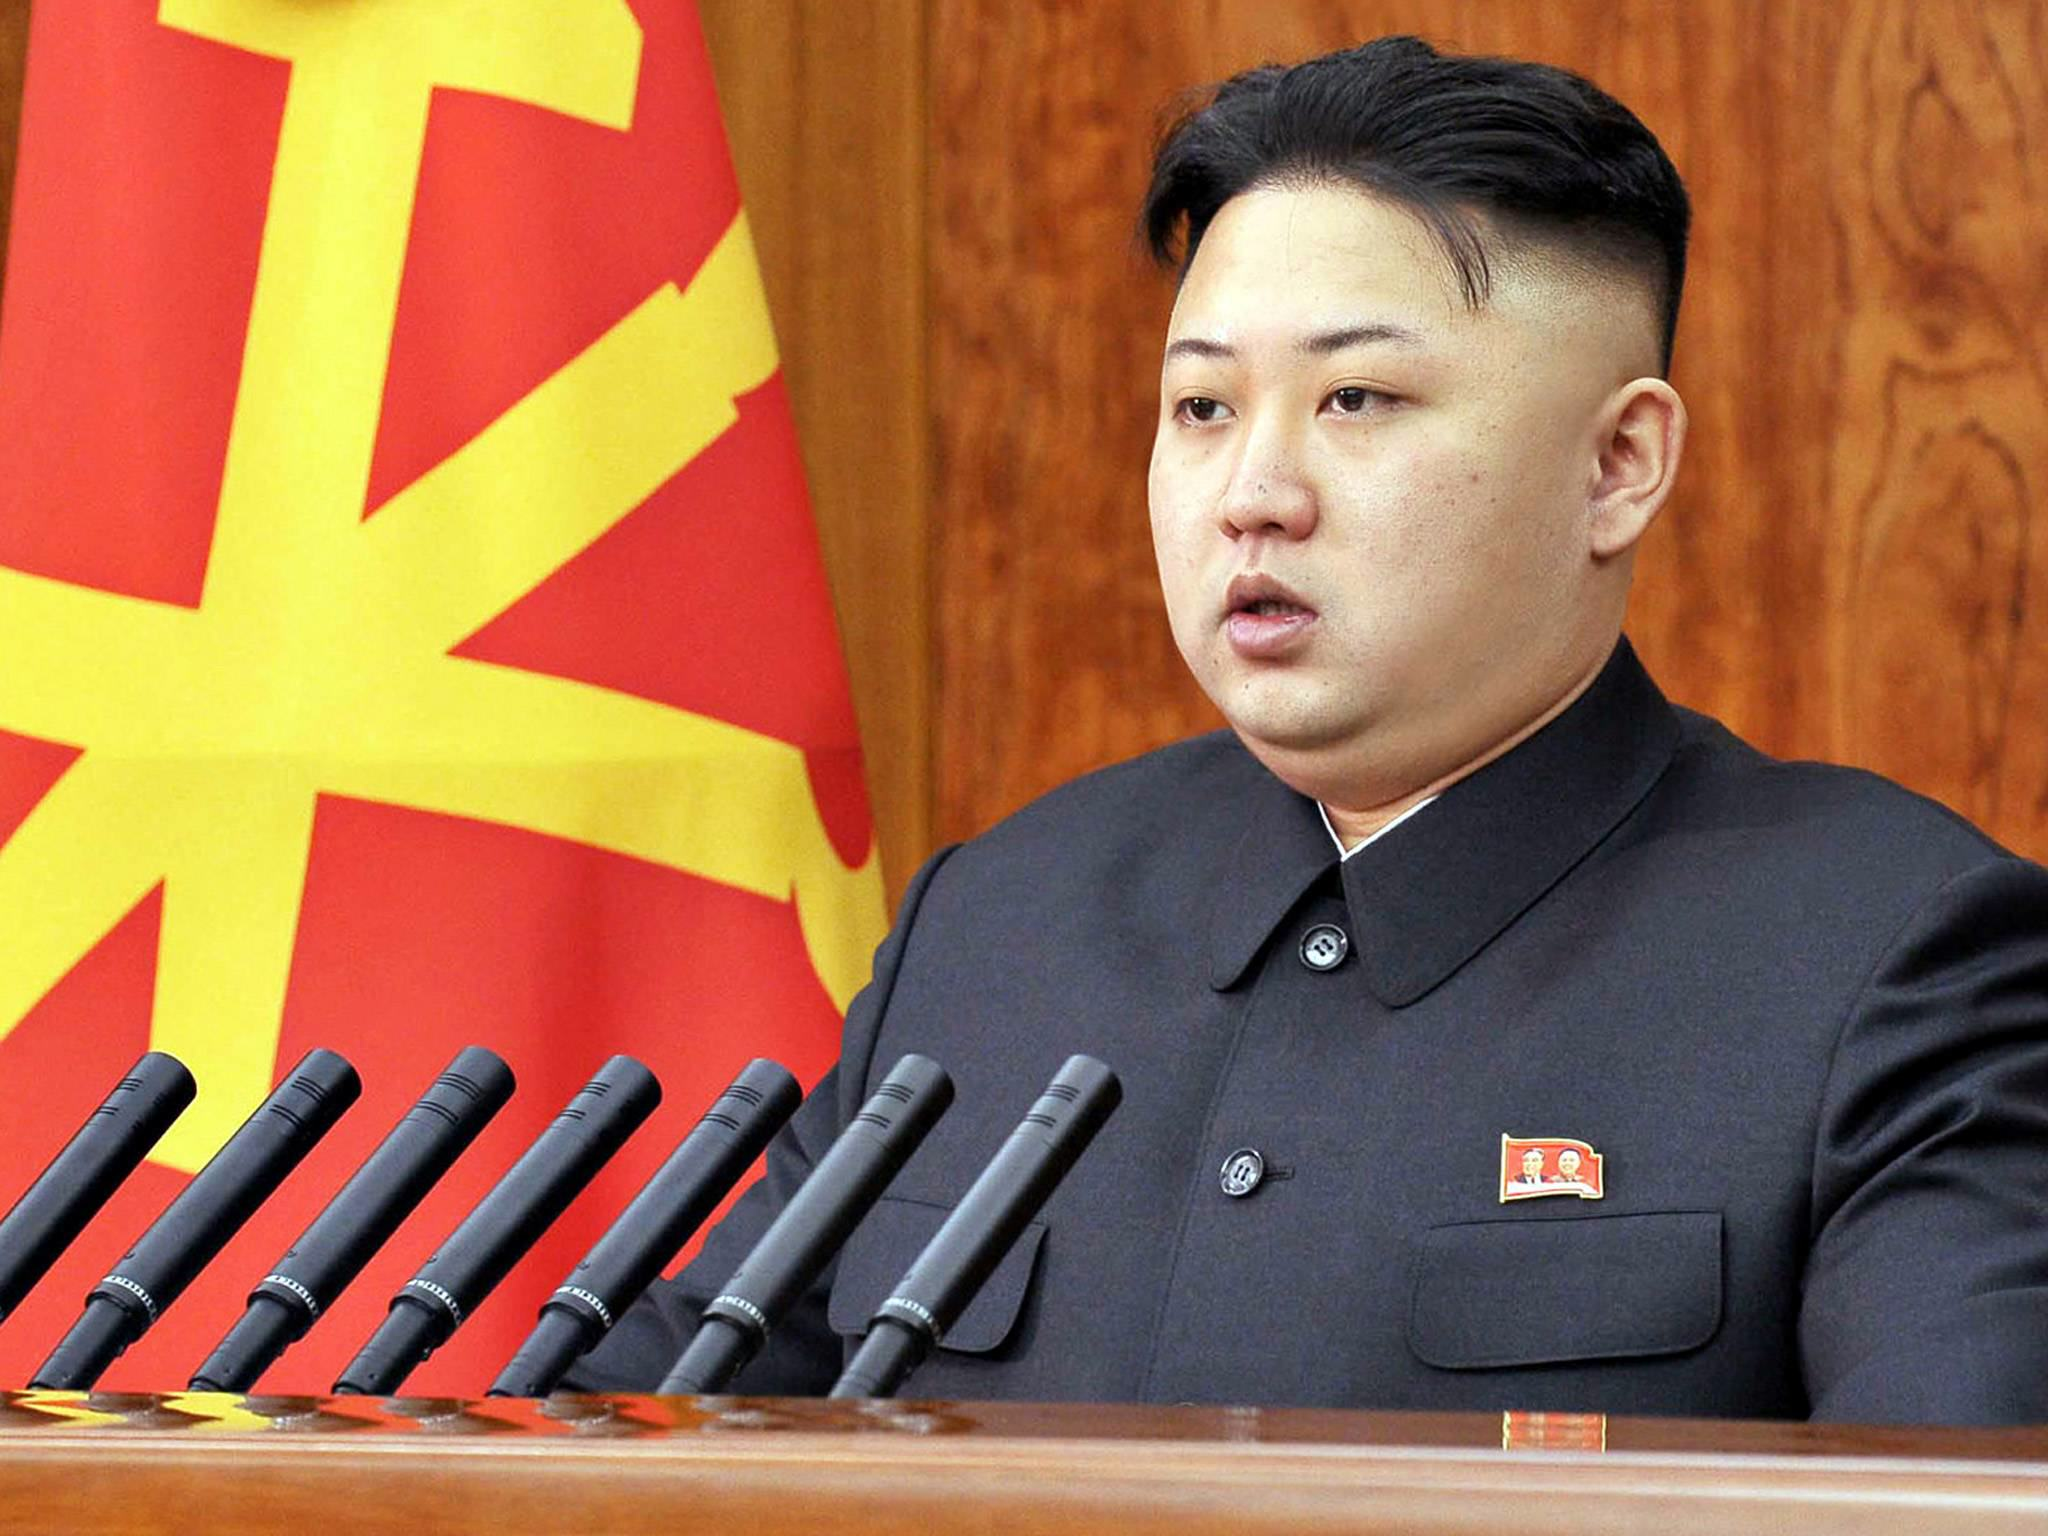 Kim Jong un Believed To Have Had His Vice Premier Shot By Firing Squad UNILAD pg 28 kim jong un getty28